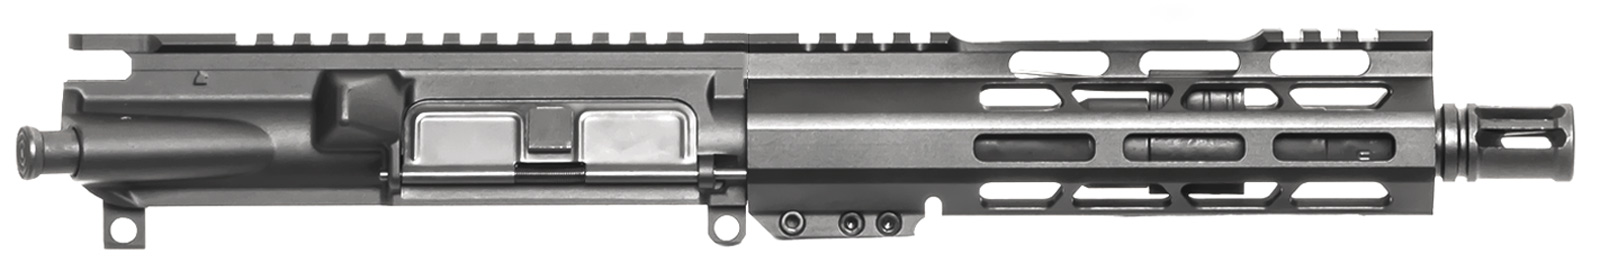 copy-of-ar-15-upper-assembly-16-multiple-calibers-15-hera-arms-keymod-unmarked-ar-15-handguard-rail